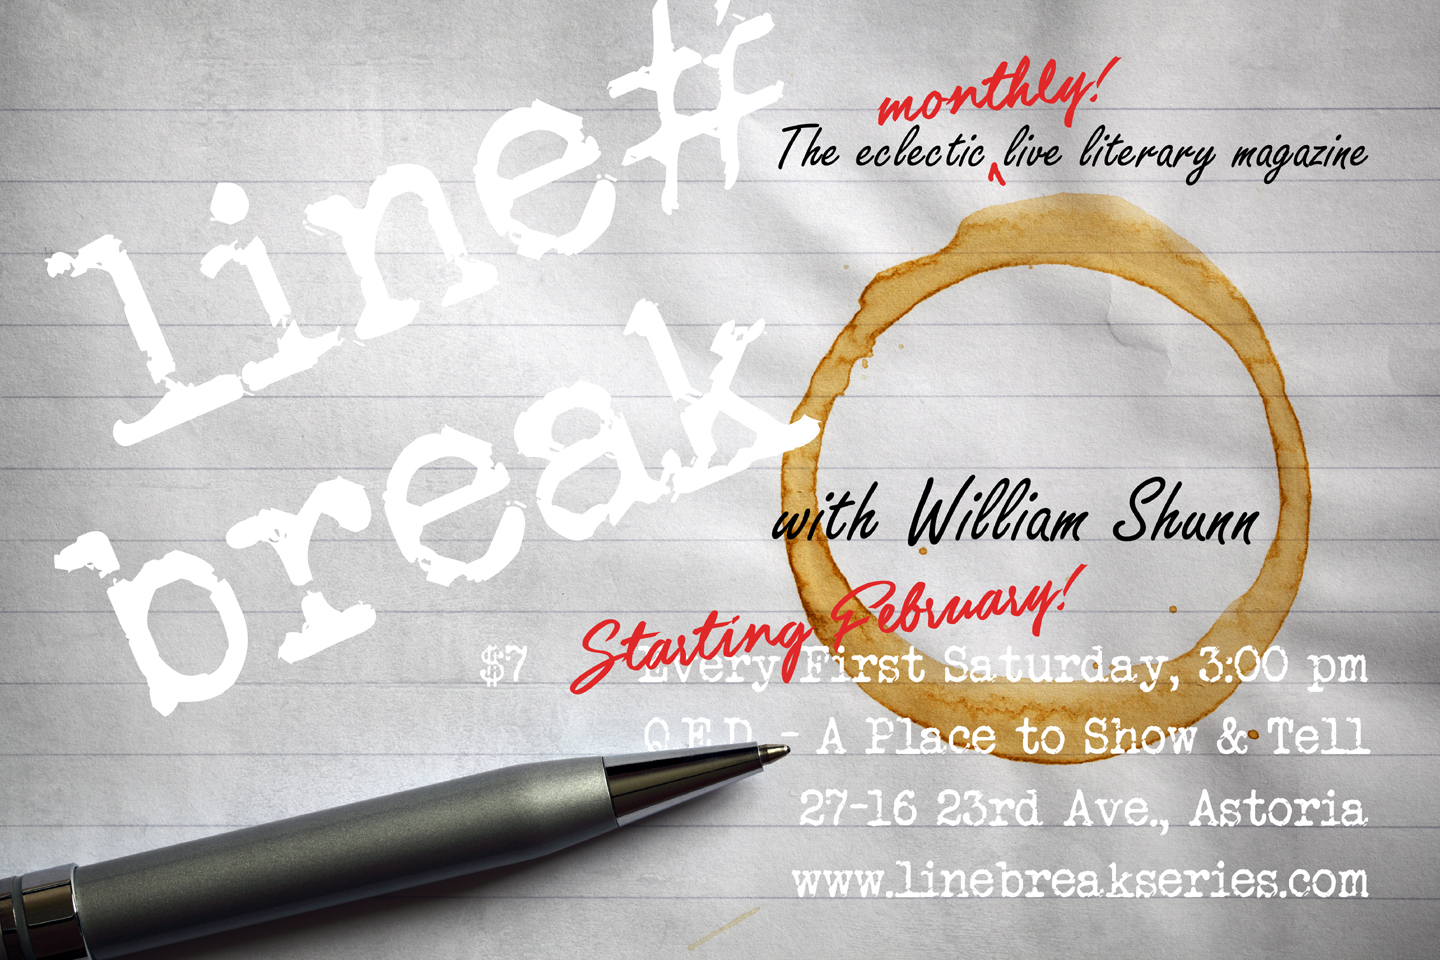 Line Break Goes Monthly Starting in February 2017!